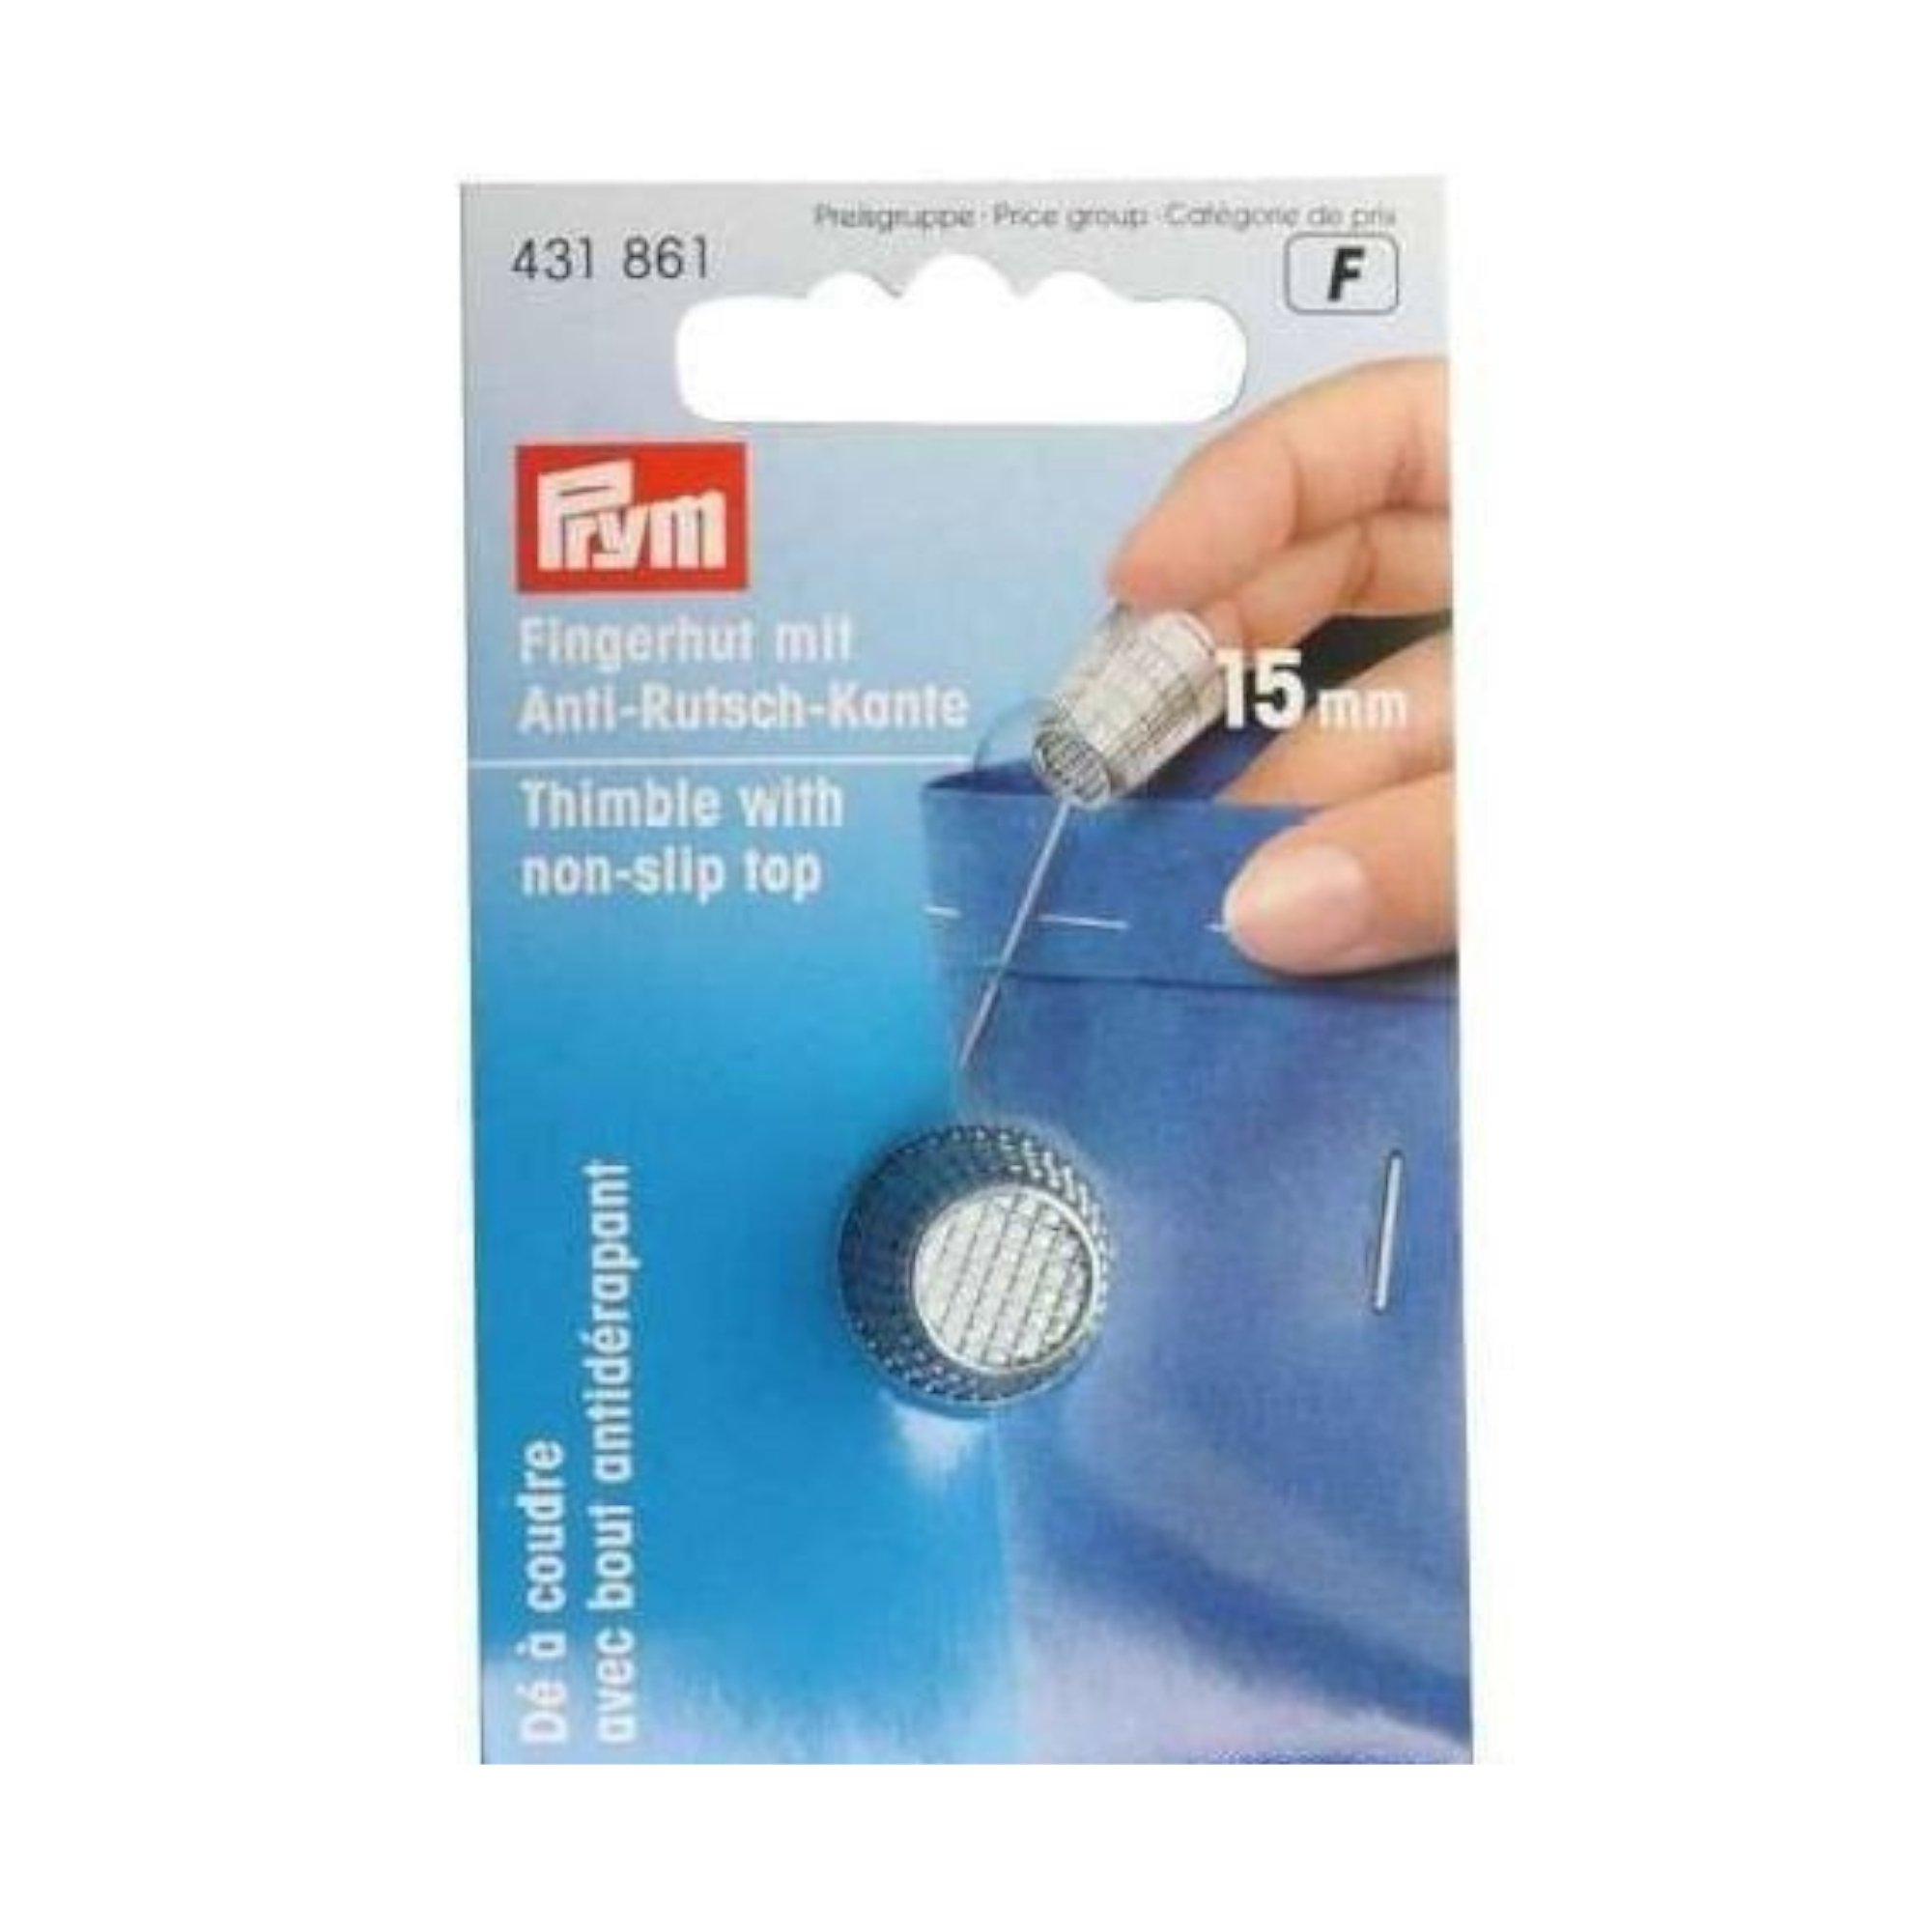 Prym Fingerhut, 15 mm